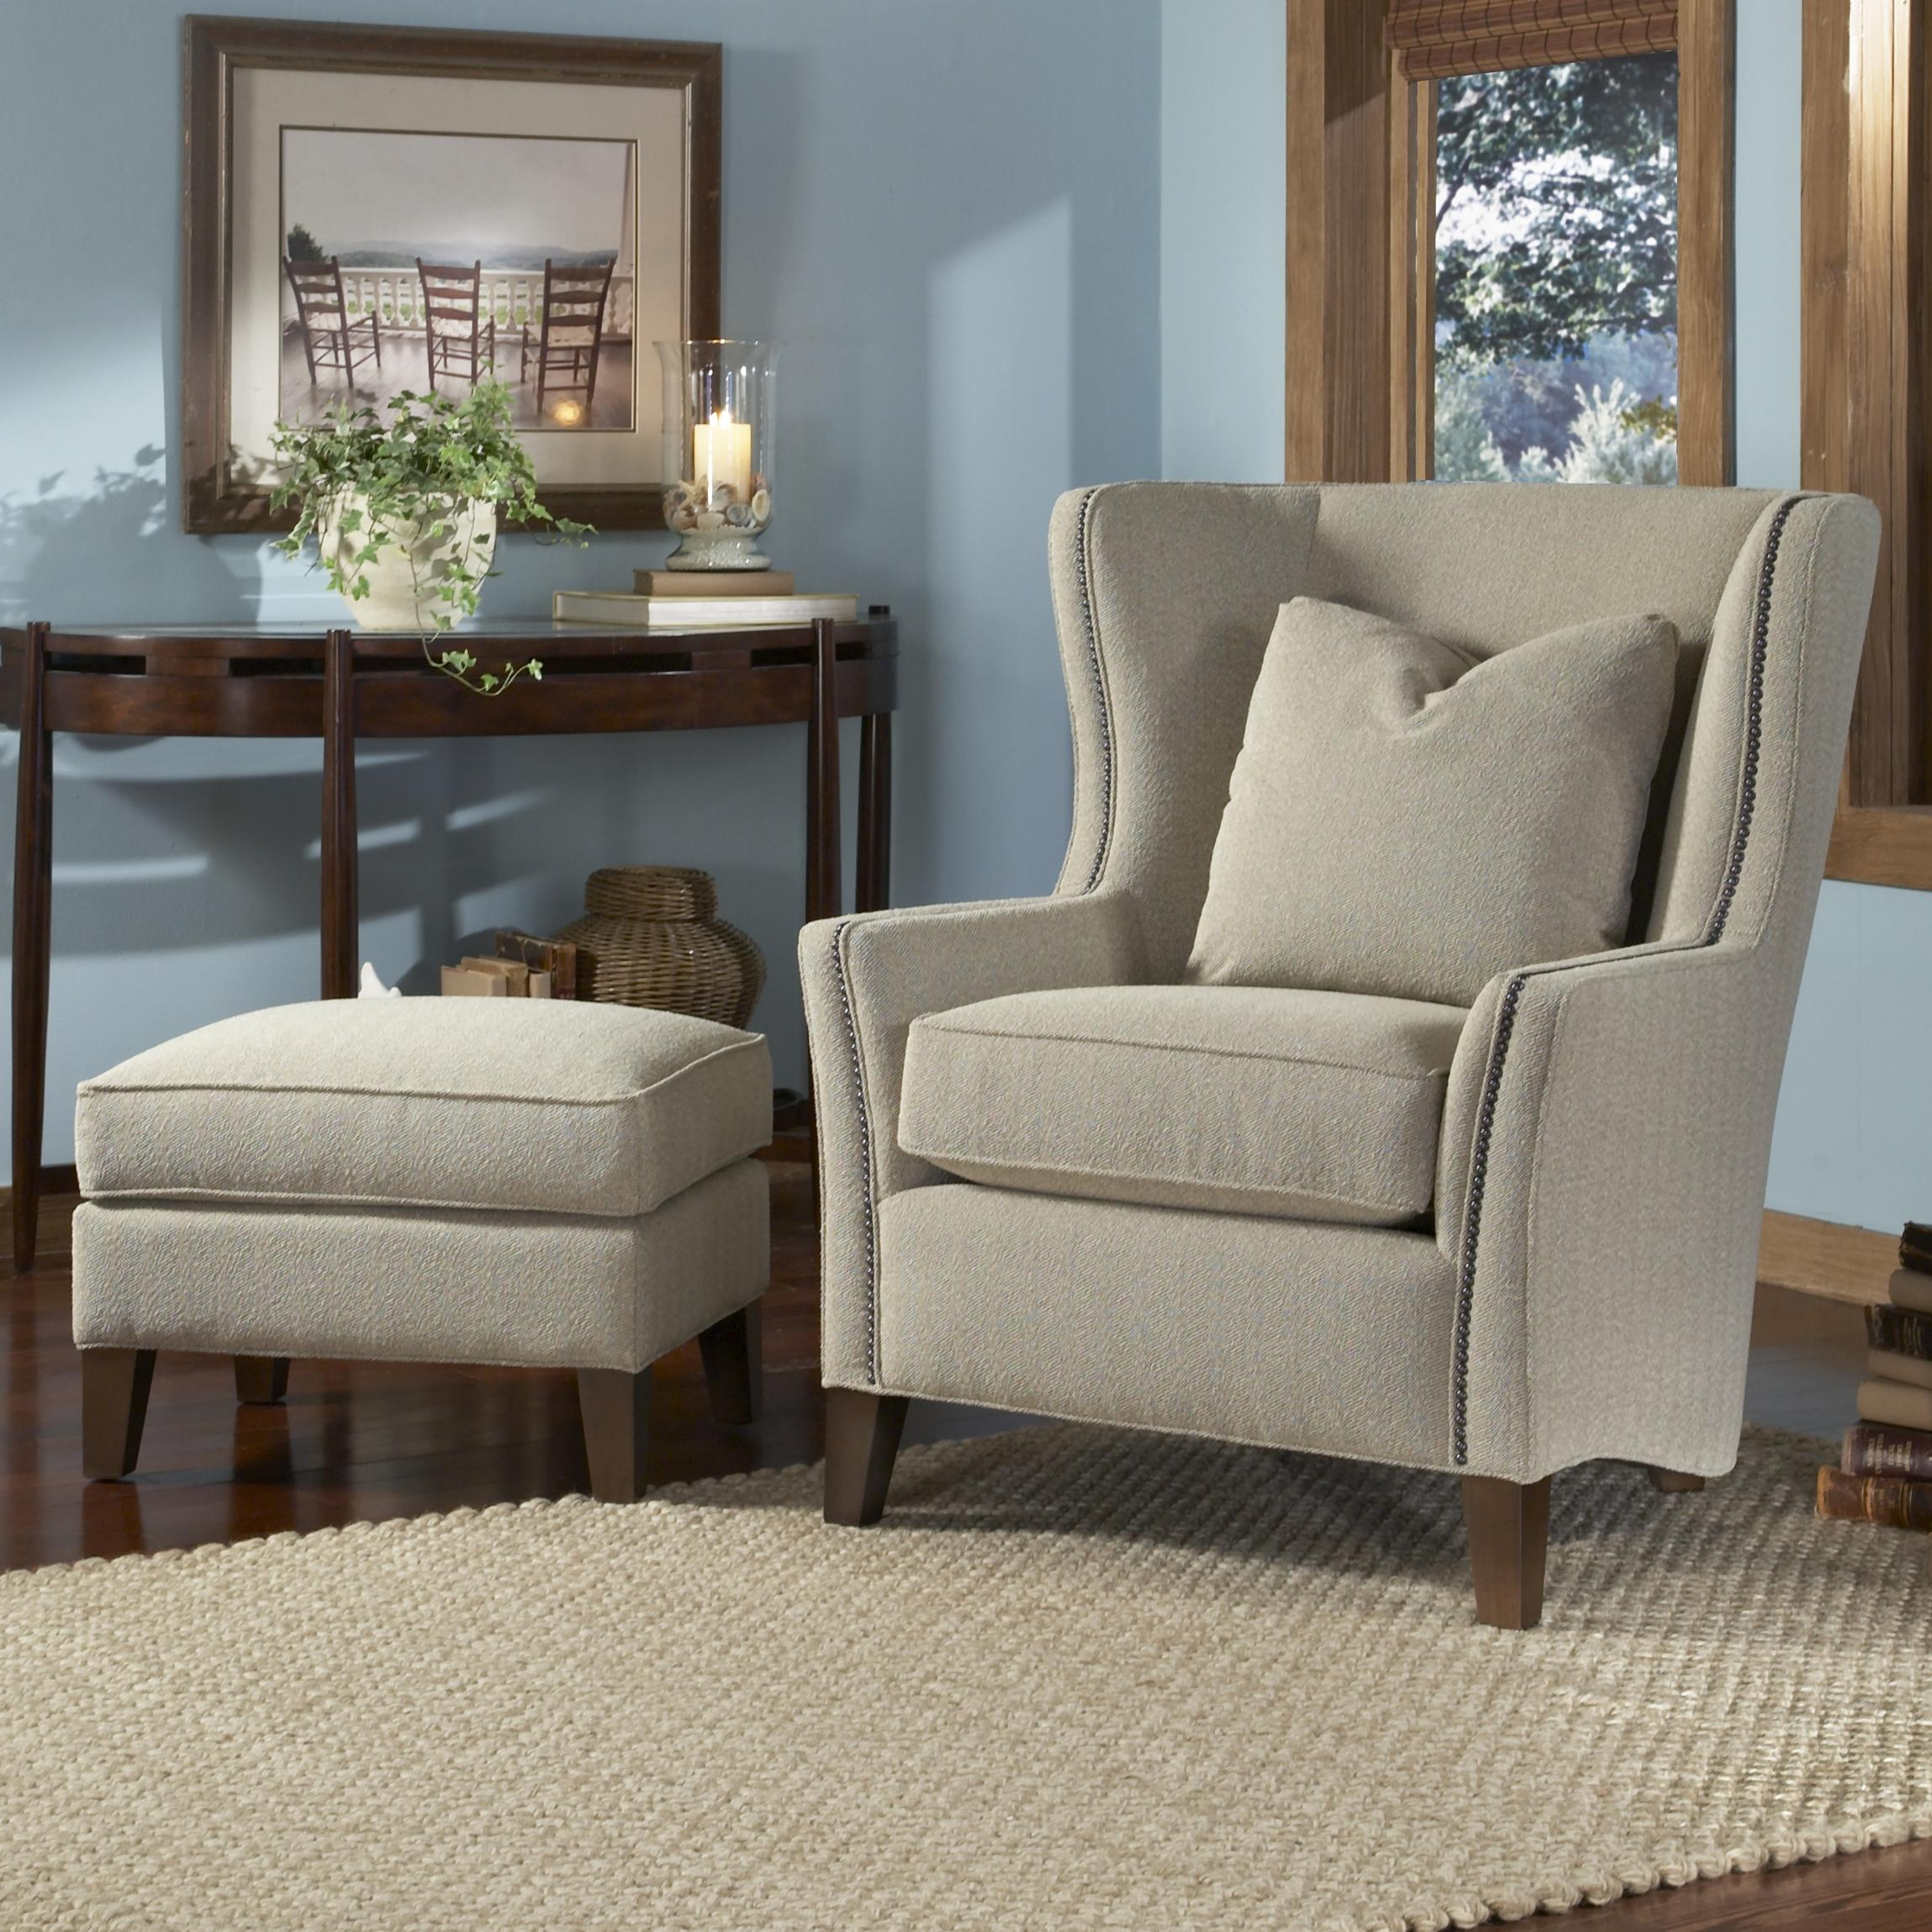 20 Inch Seat Heigh Accent Chair: Contemporary Wingback Chair With Track Arms By Smith